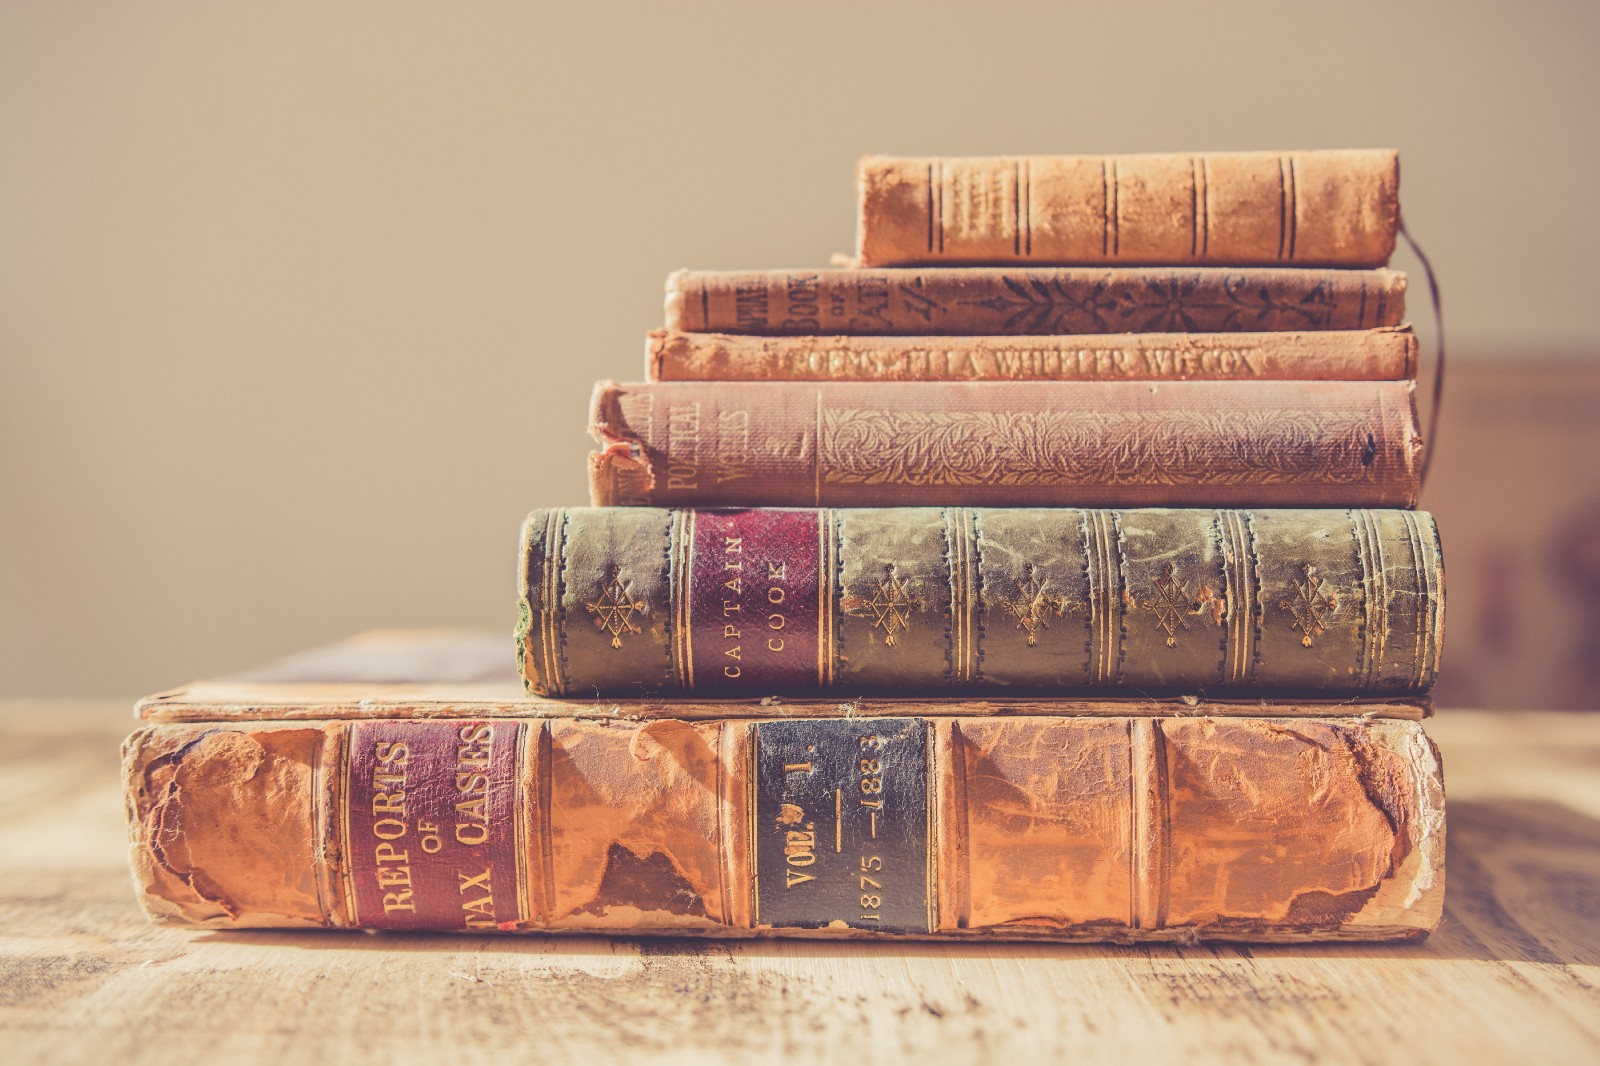 The 5 Most Gifted Books by Some of the World's Most Successful People